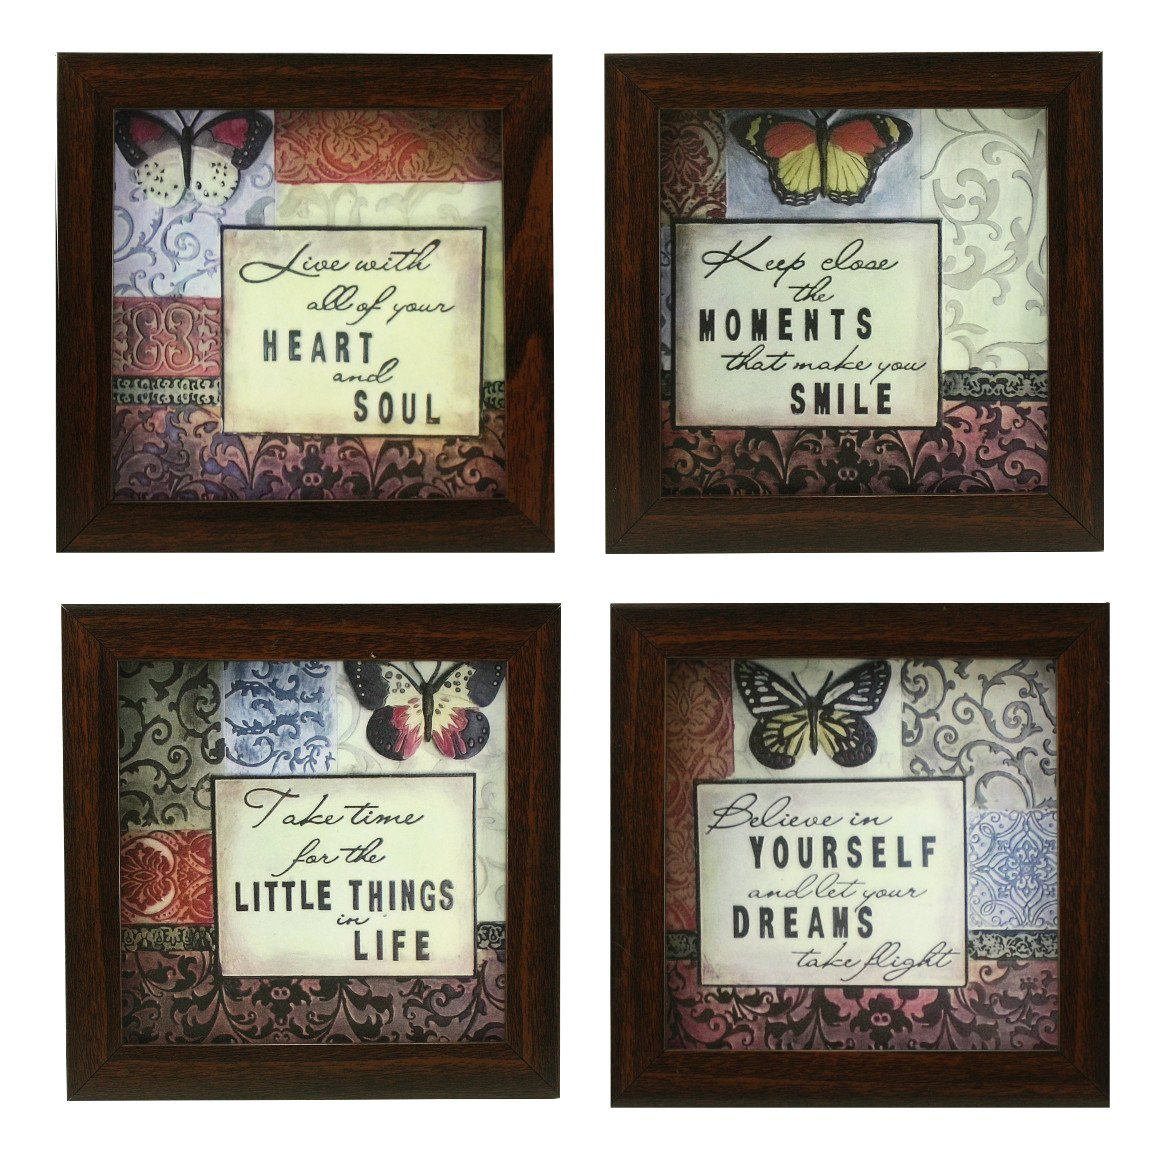 4 PIECE SET OF FRAMED WALL HANGING INSPIRATIONAL QUOTES